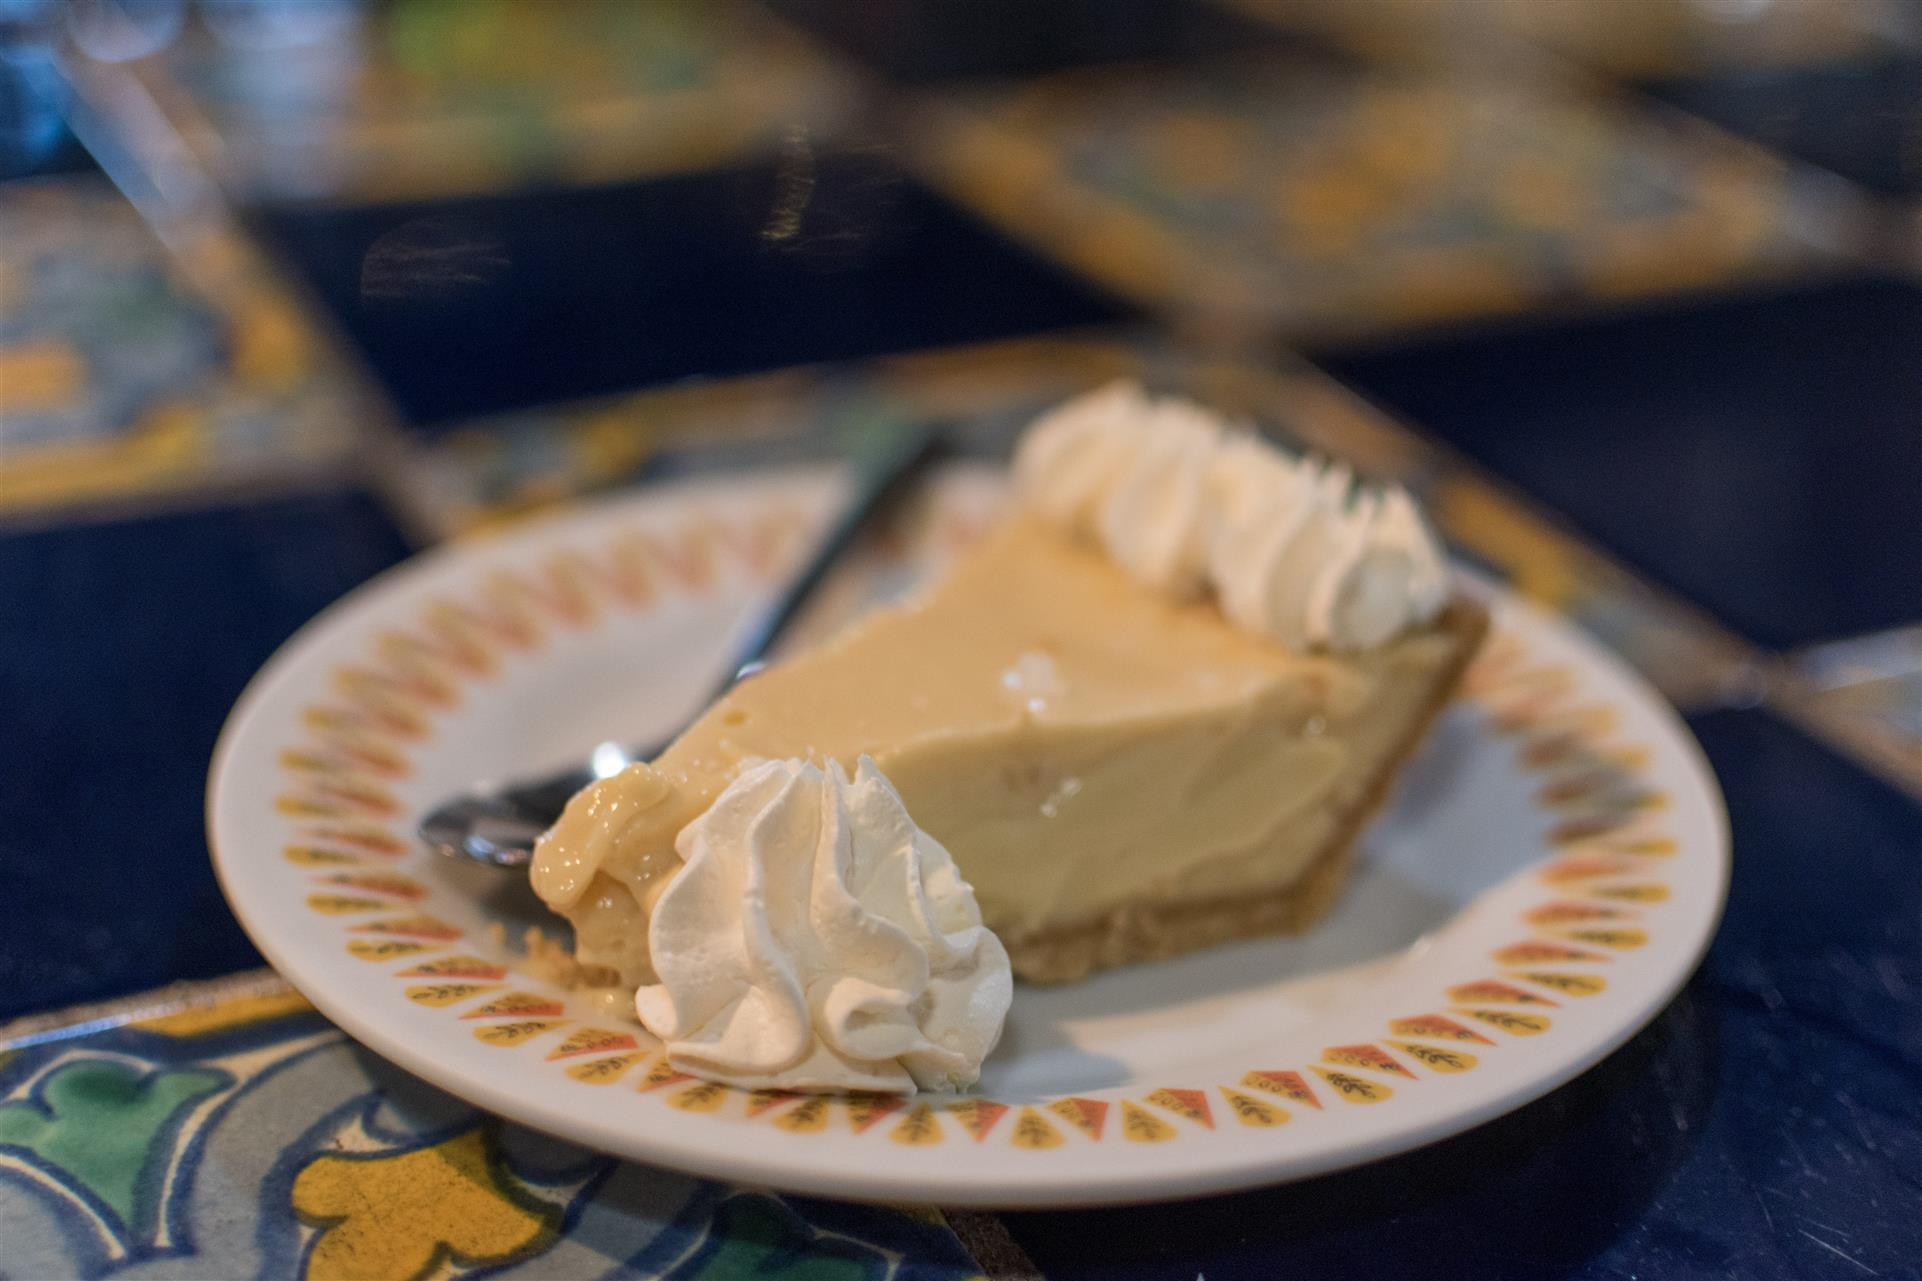 slice of key lime pie with a dallop of whipped cream and a spoon on a plate